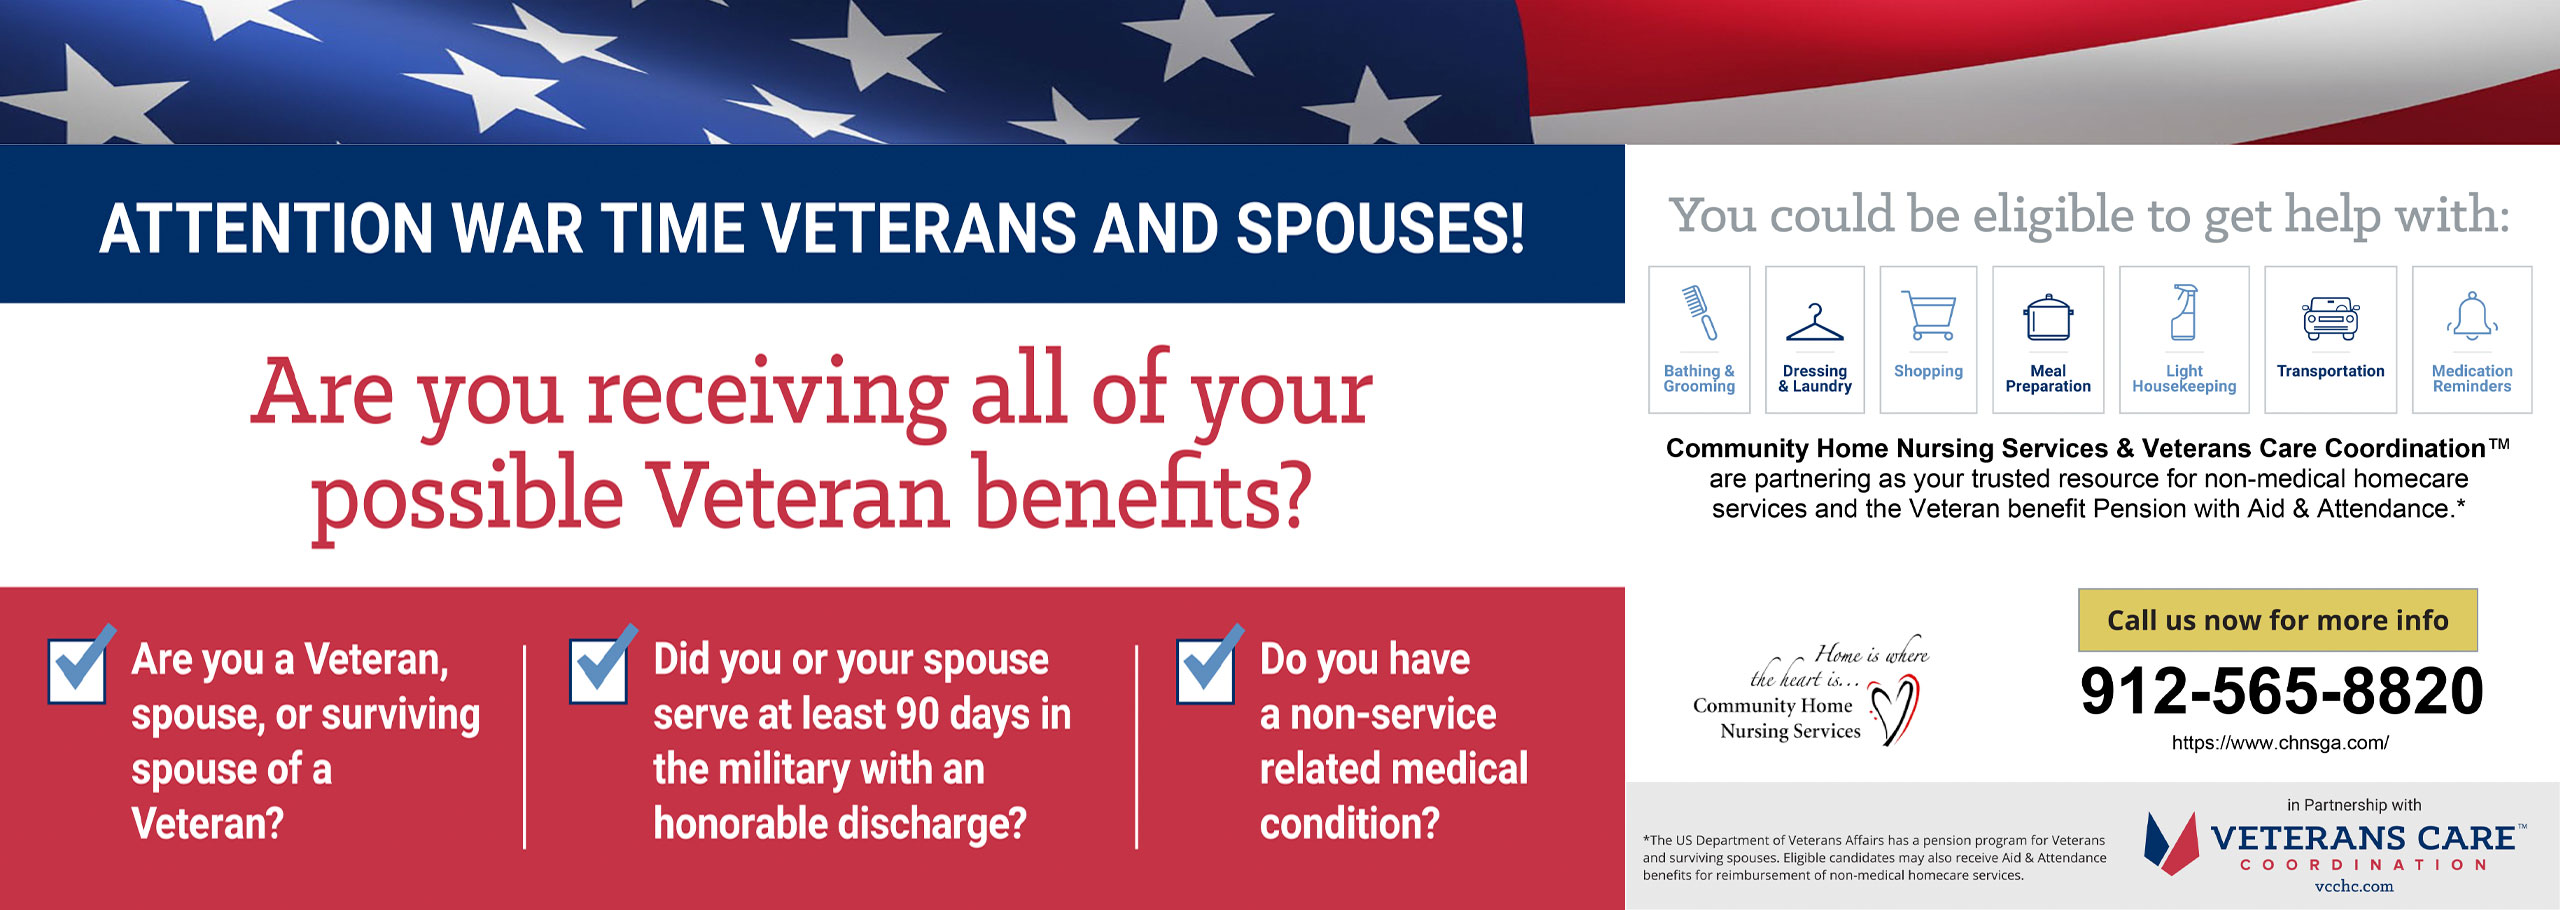 Attention War Time Veterans and Spouses. Are you you Receiving all of your possible Veteran Benefits?